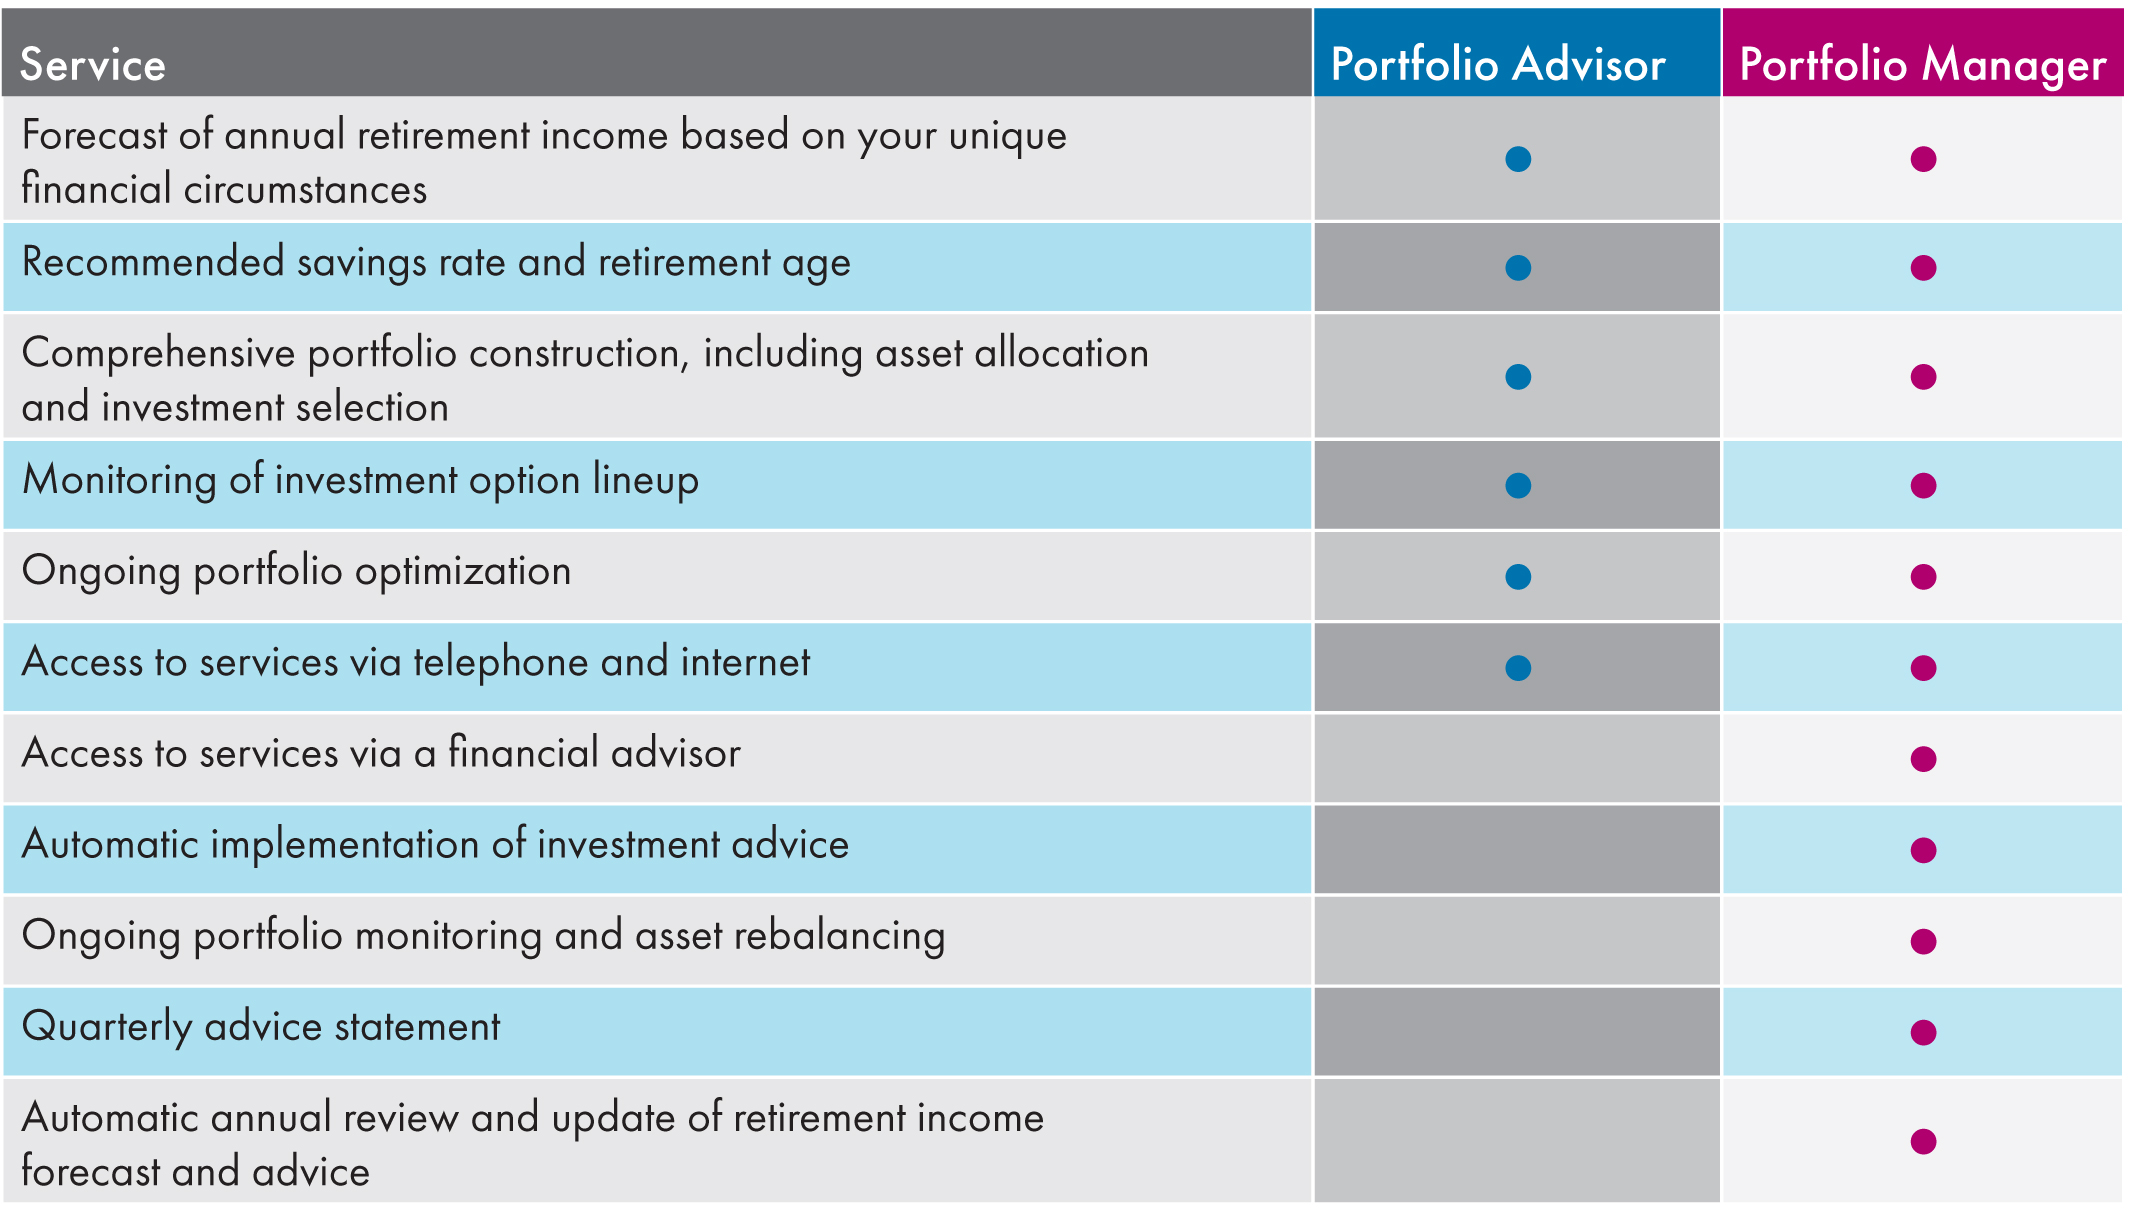 Portfolio Advisor and Portfolio Manager Services